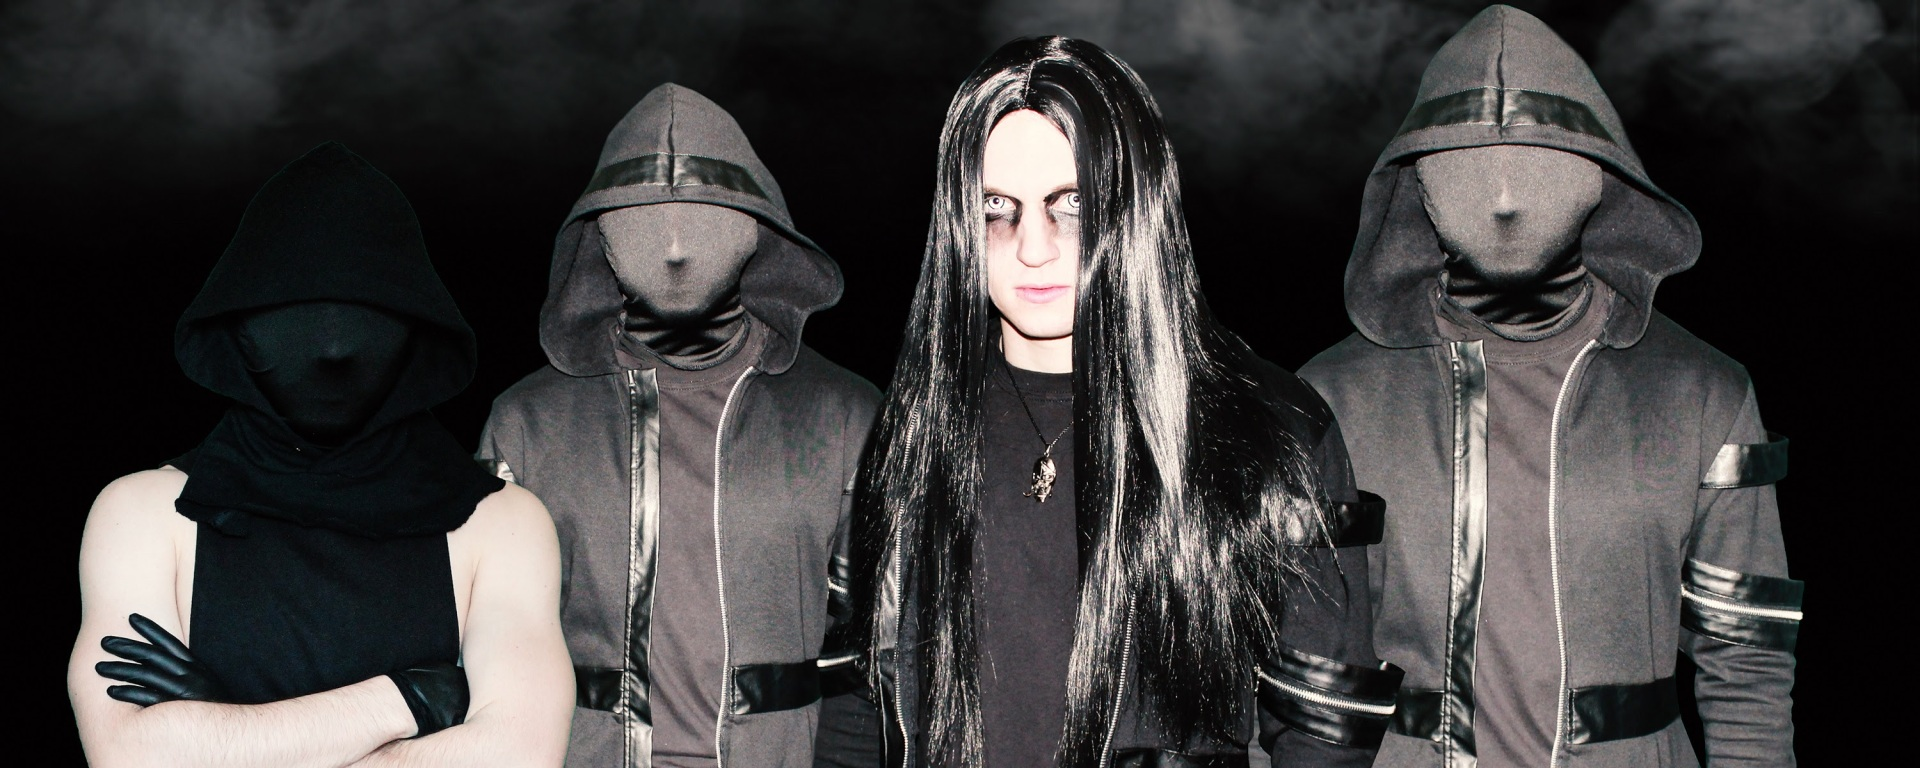 """Follow The Shadow With Grimmreaper's New Single """"North Star"""" Off """"The Tragedy of Being"""""""